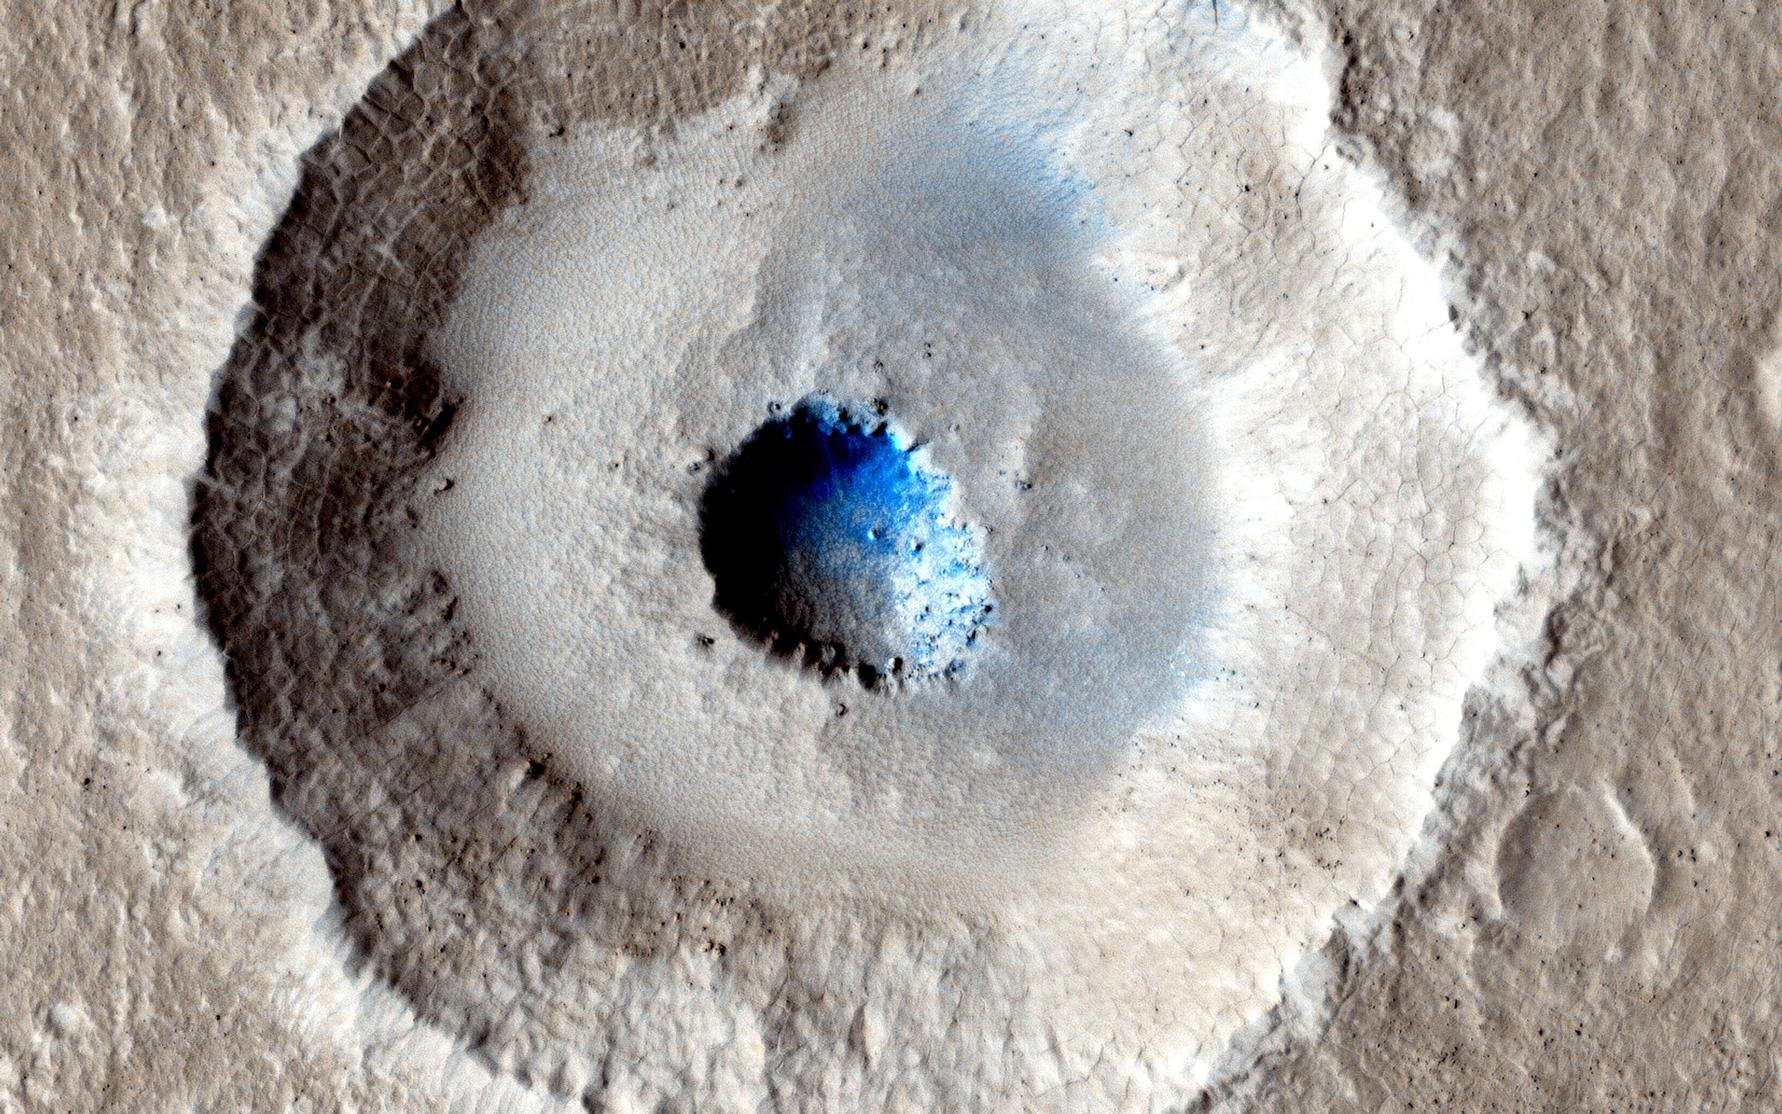 This is an image of a small, gray impact crater with a bowl-shaped rim.